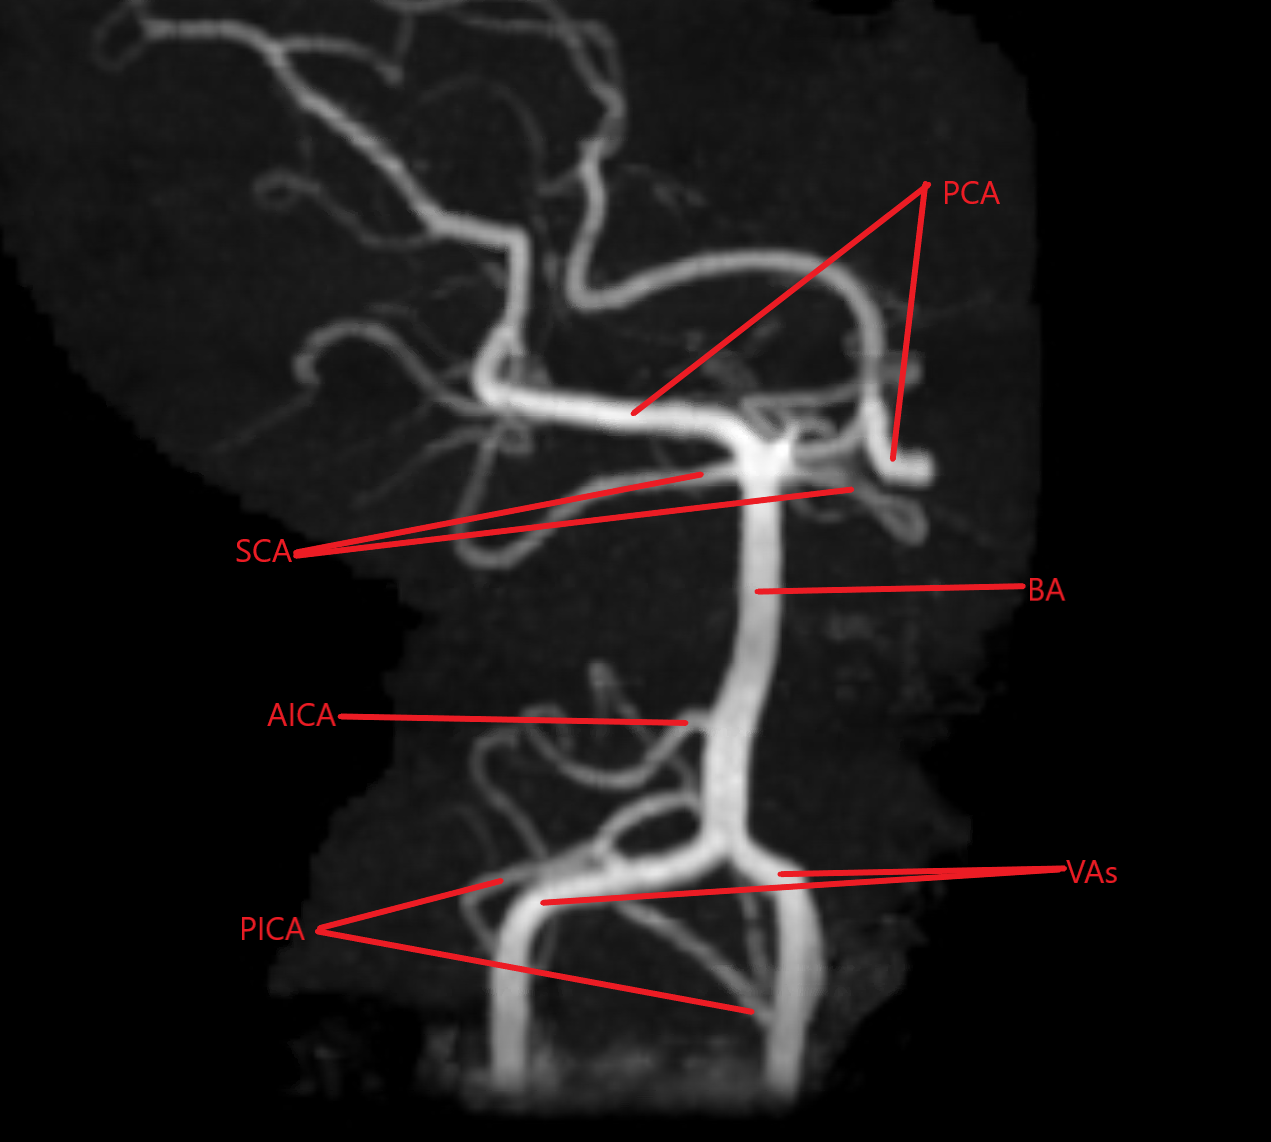 Magnetic Resonance Angiogram of the posterior circulation. PCA (posterior circulation arteries), SCA (superior cerebellar arteries), BA (basilar artery), AICA (right anterior inferior cerebellar artery), VAs (vertebral arteries), PICA (posterior inferior cerebellar arteries